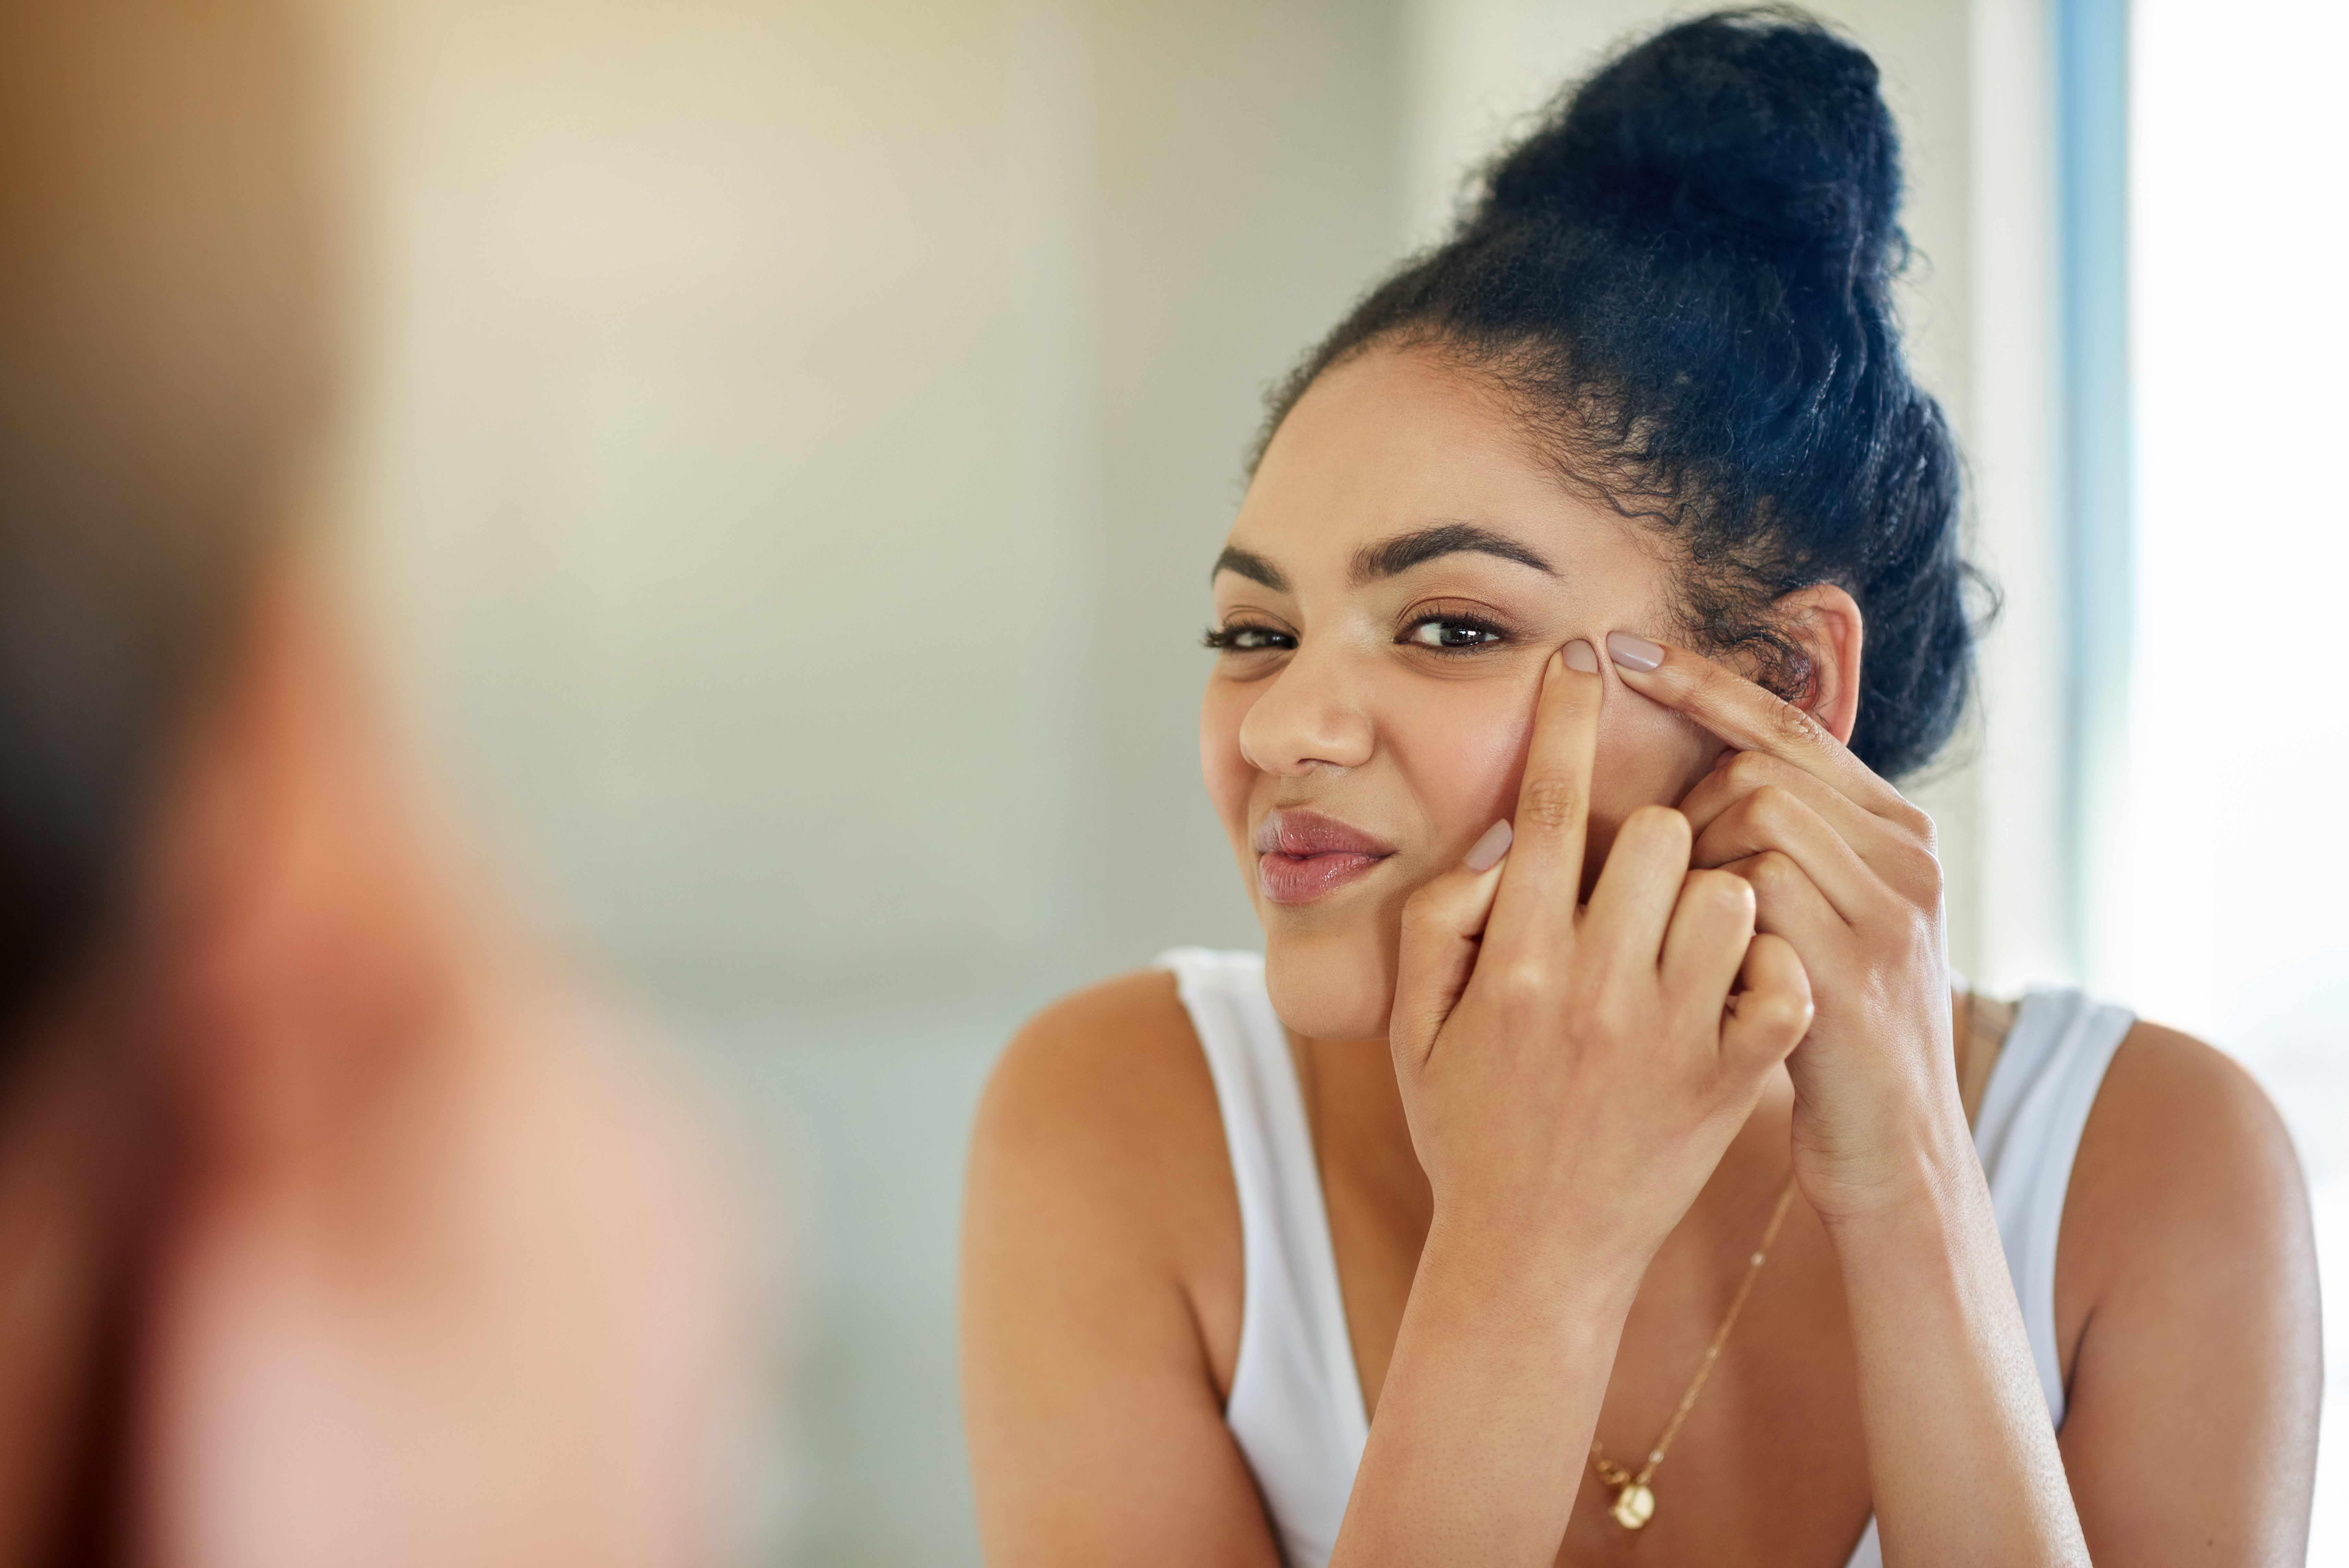 Skincare 101: How To Get Rid Of Dark Spots - Essence